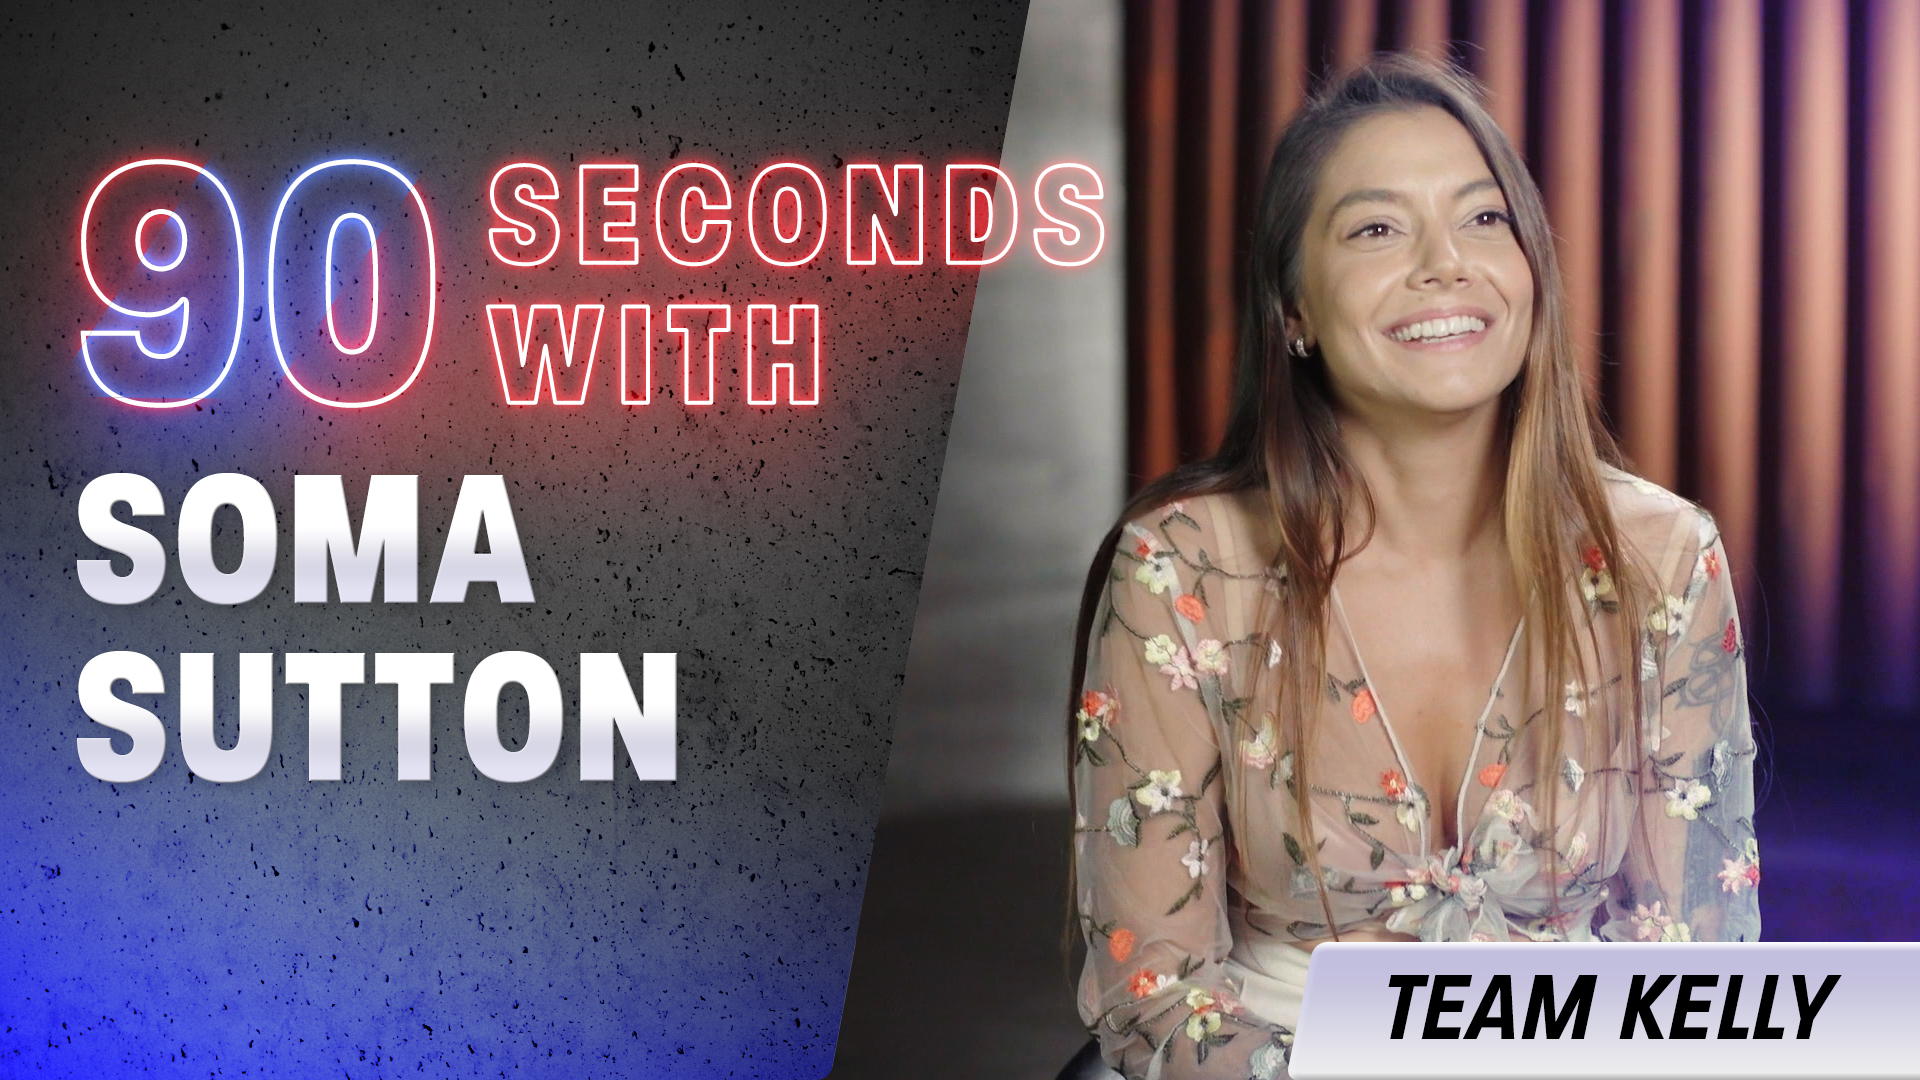 90 Seconds with Soma Sutton